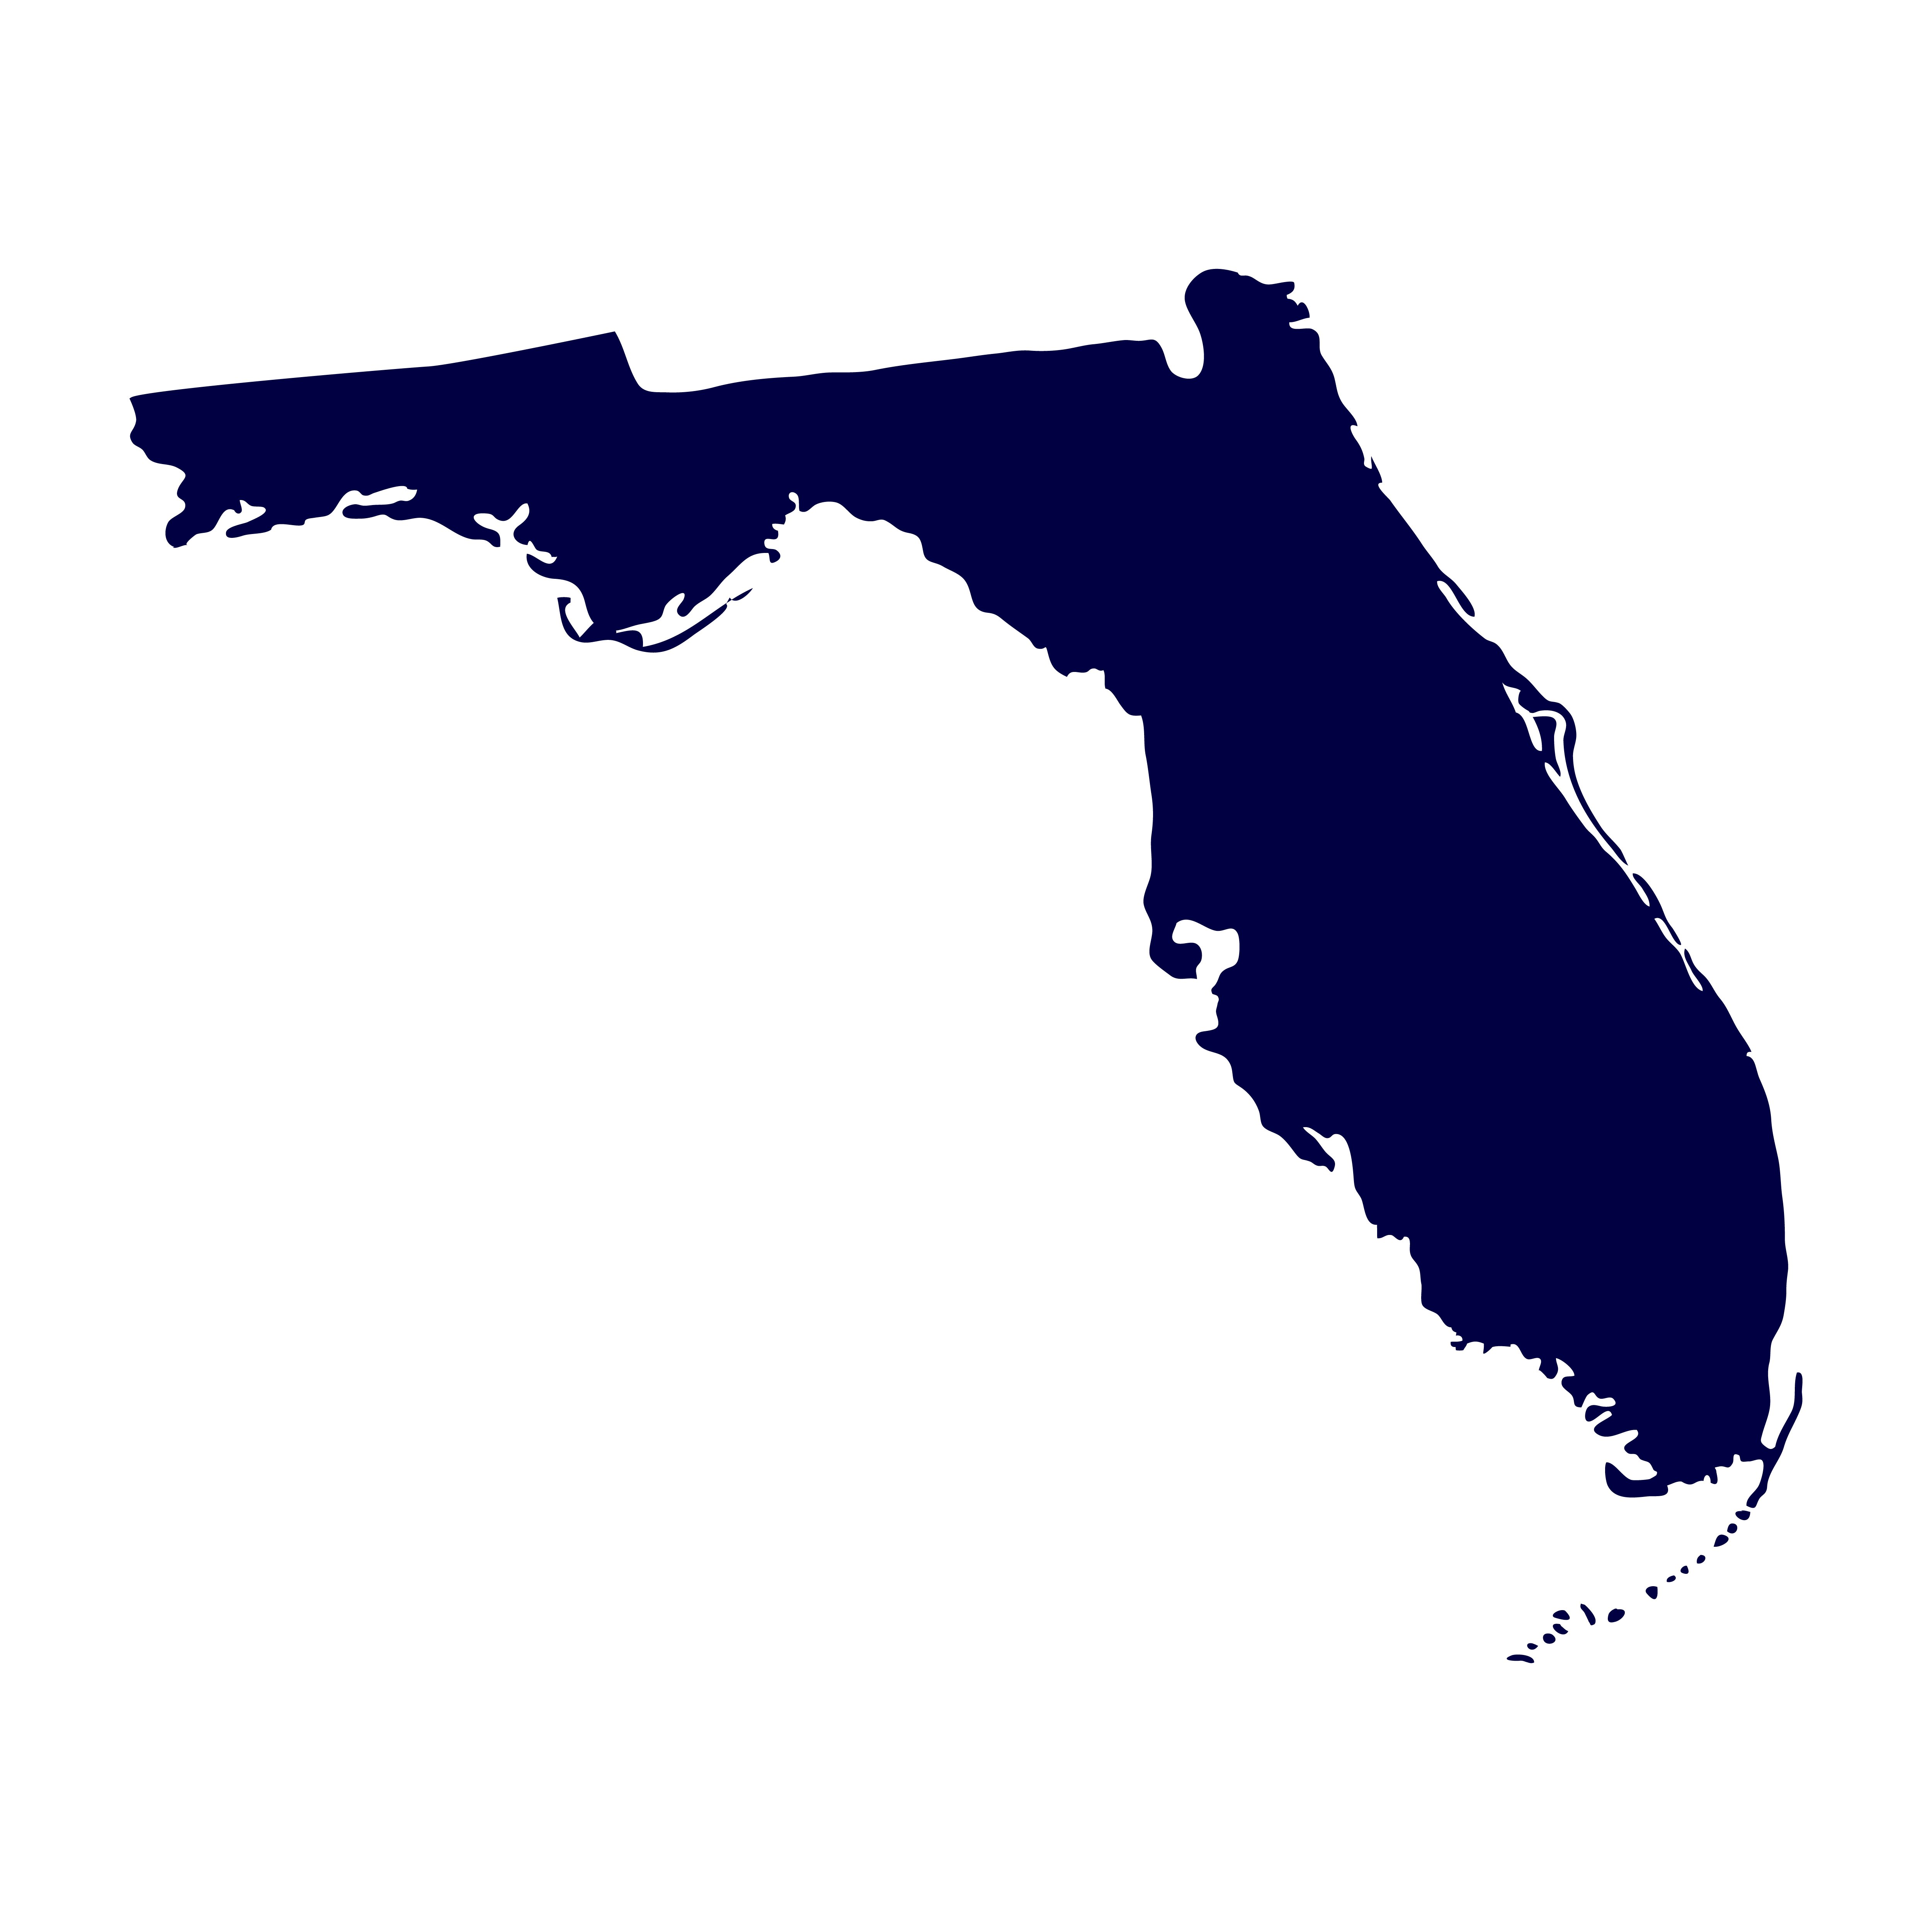 US DOL signs agreement with Florida Department of Revenue to reduce misclassification of employees